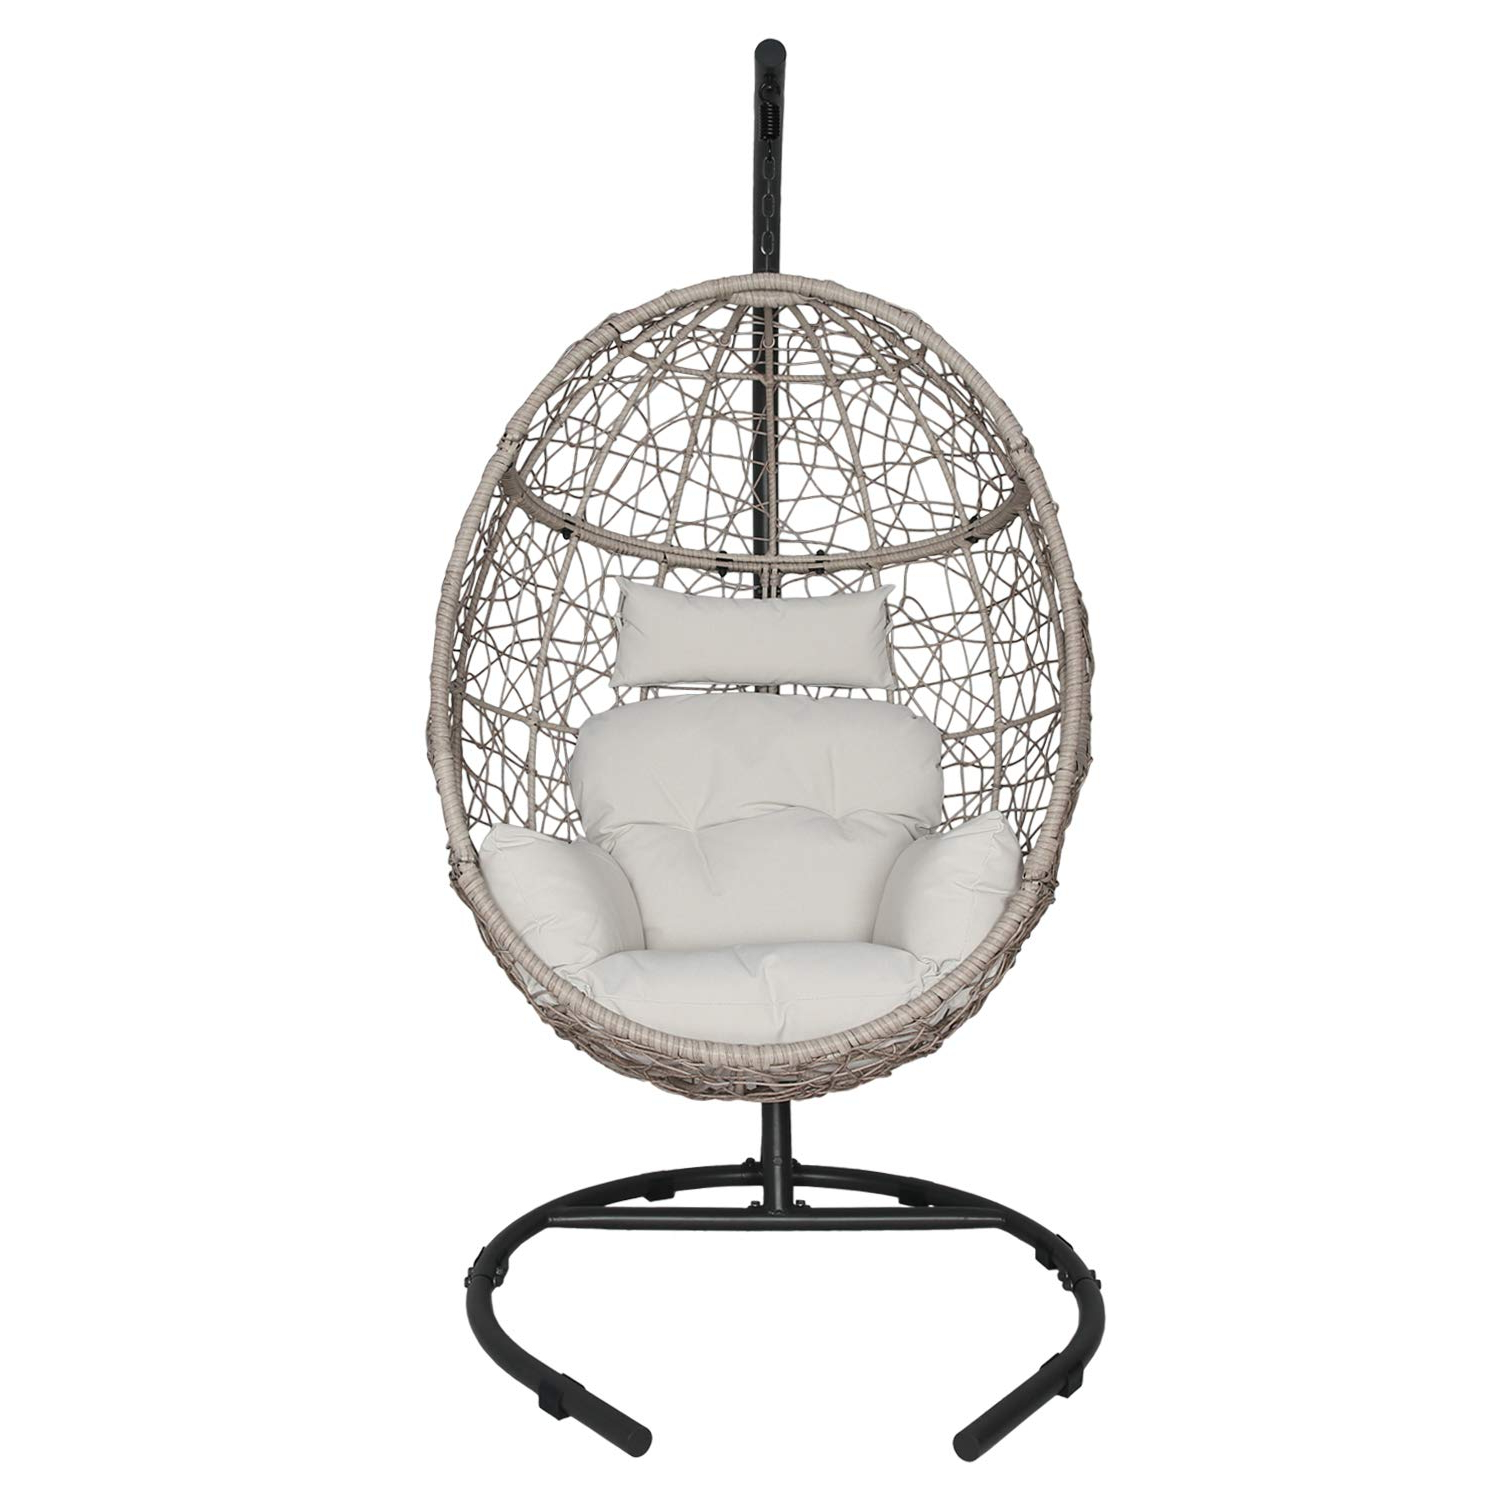 Outdoor Wicker Plastic Tear Porch Swings With Stand With Latest Ulax Furniture Outdoor Patio Wicker Hanging Basket Swing Chair Tear Drop  Egg Chair With Cushion And Stand (Beige) (Gallery 1 of 30)